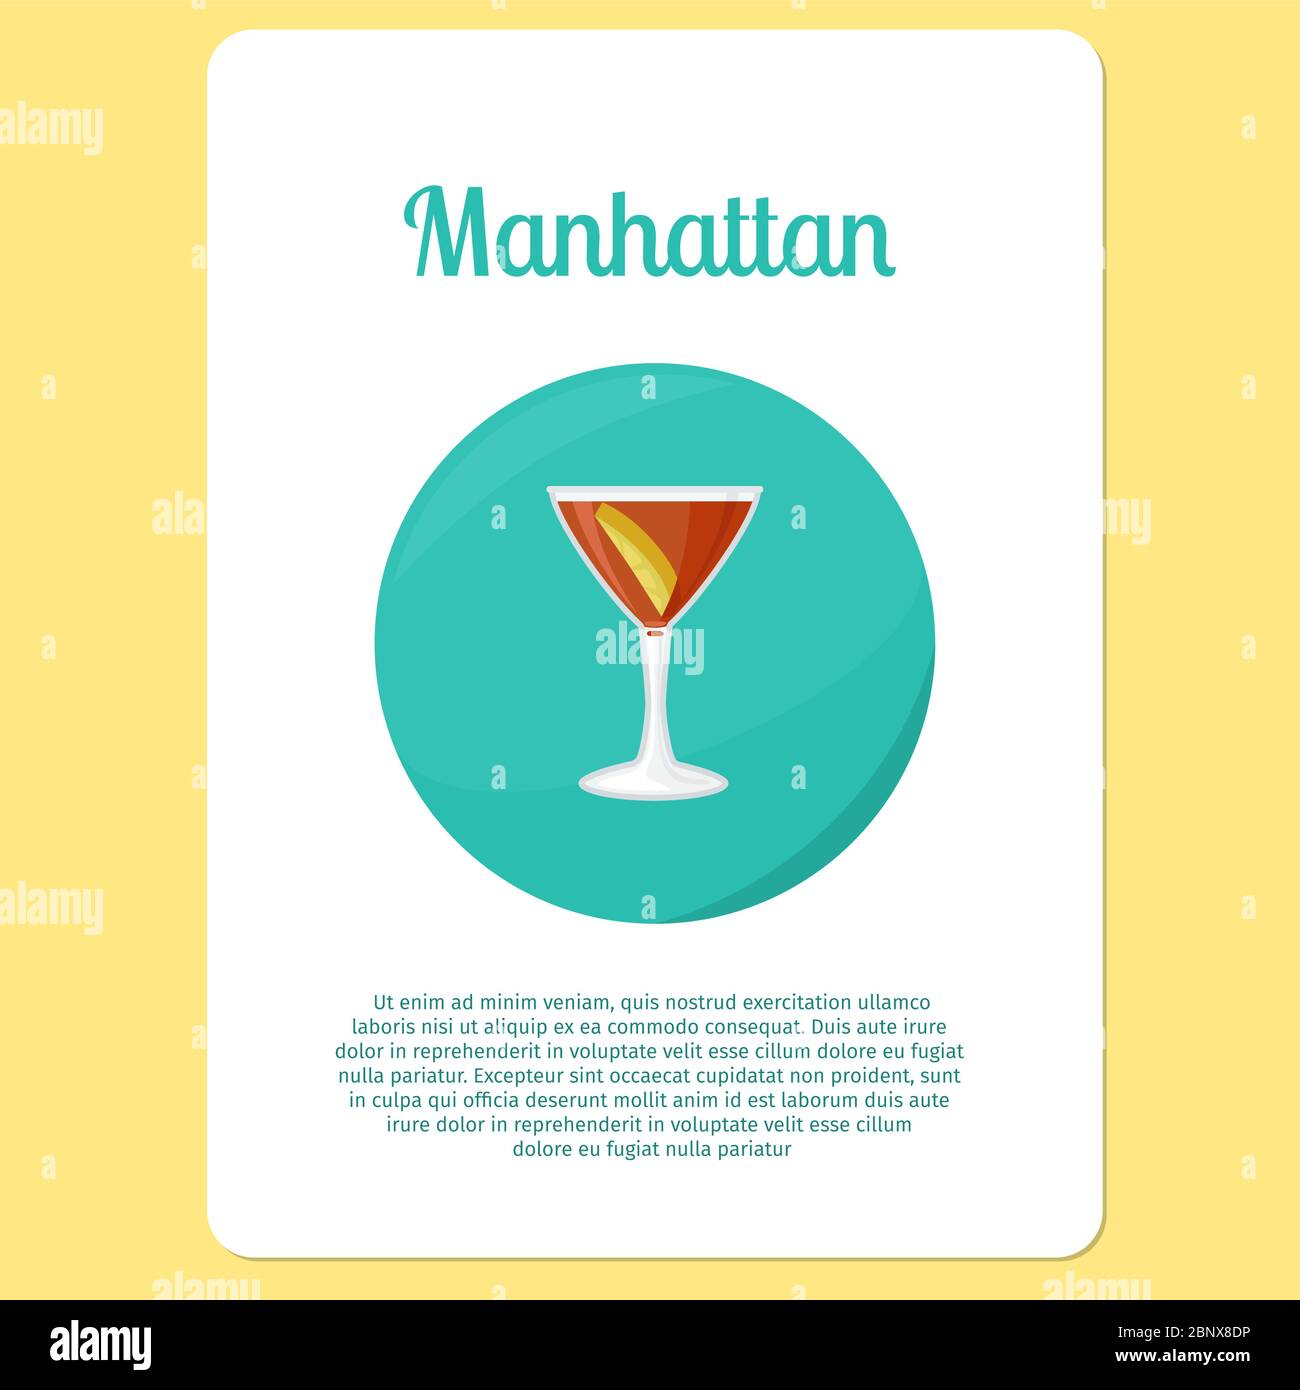 Manhattan Cocktail Menu Item Or Sticker Party Drink In Circle Icon Vector Illustration Stock Vector Image Art Alamy